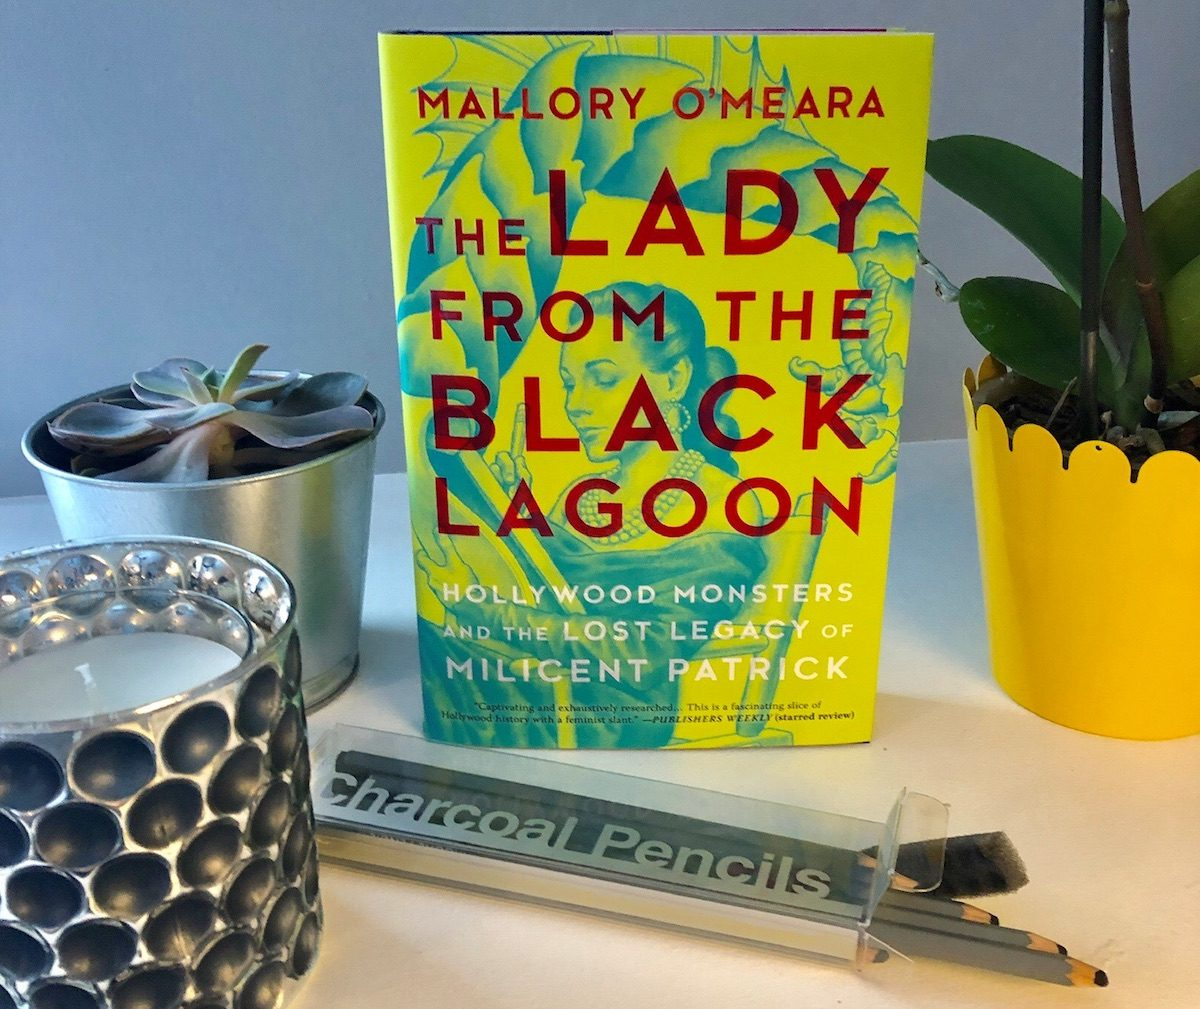 Lady from the Black Lagoon by Mallory O'Meara